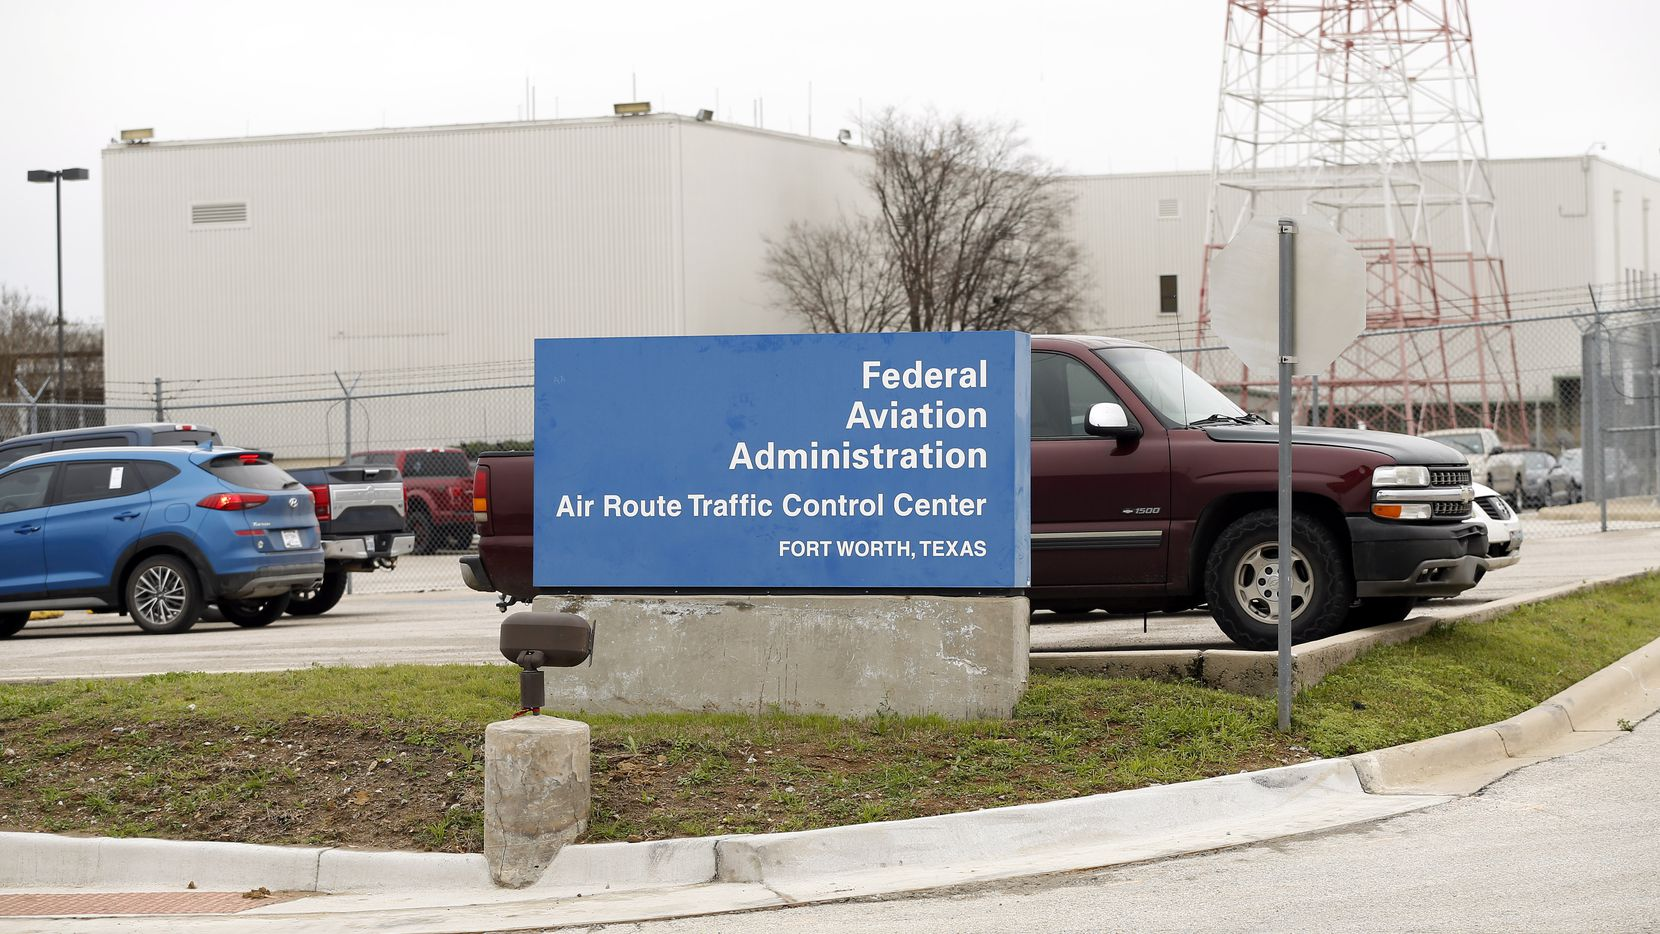 The main entrance to FAA's Fort Worth Air Route Traffic Control Center